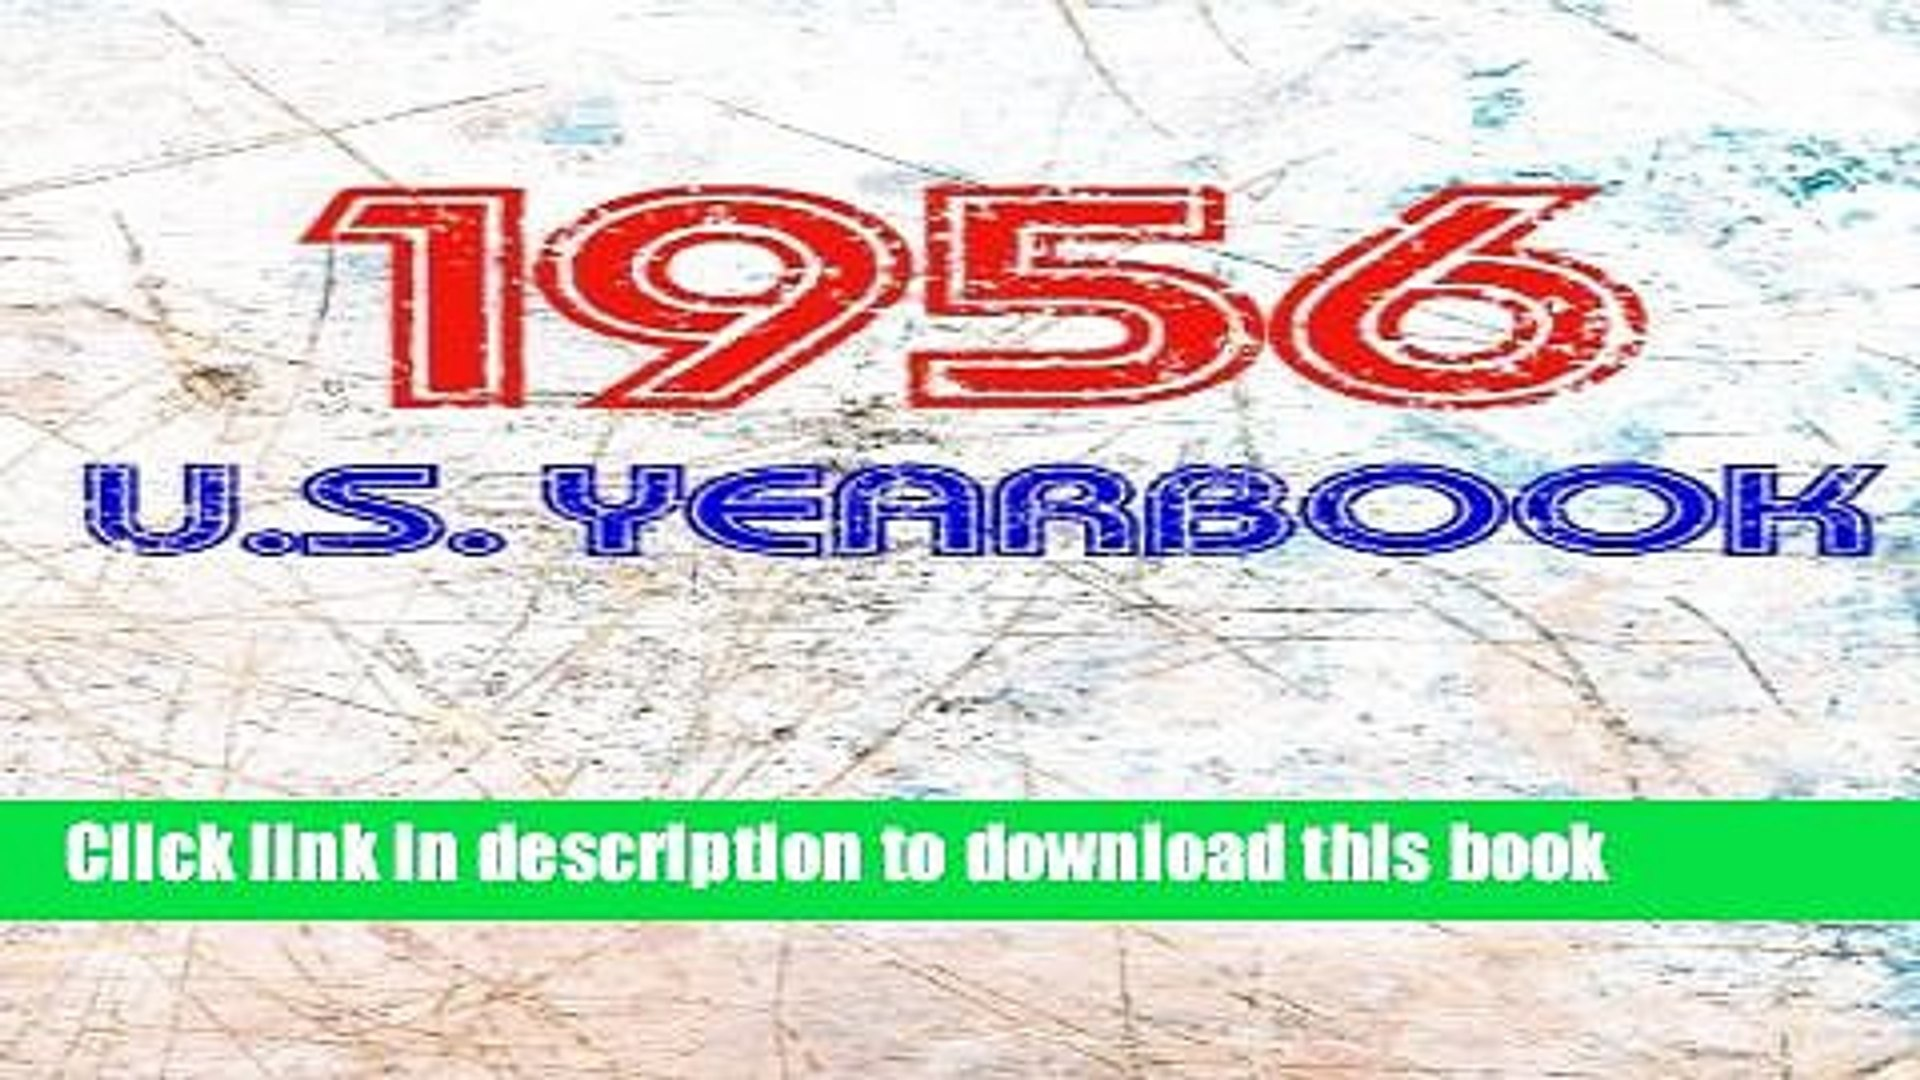 [Popular Books] The 1956 U.S. Yearbook: Interesting facts from 1956 including News, Sport, Music,